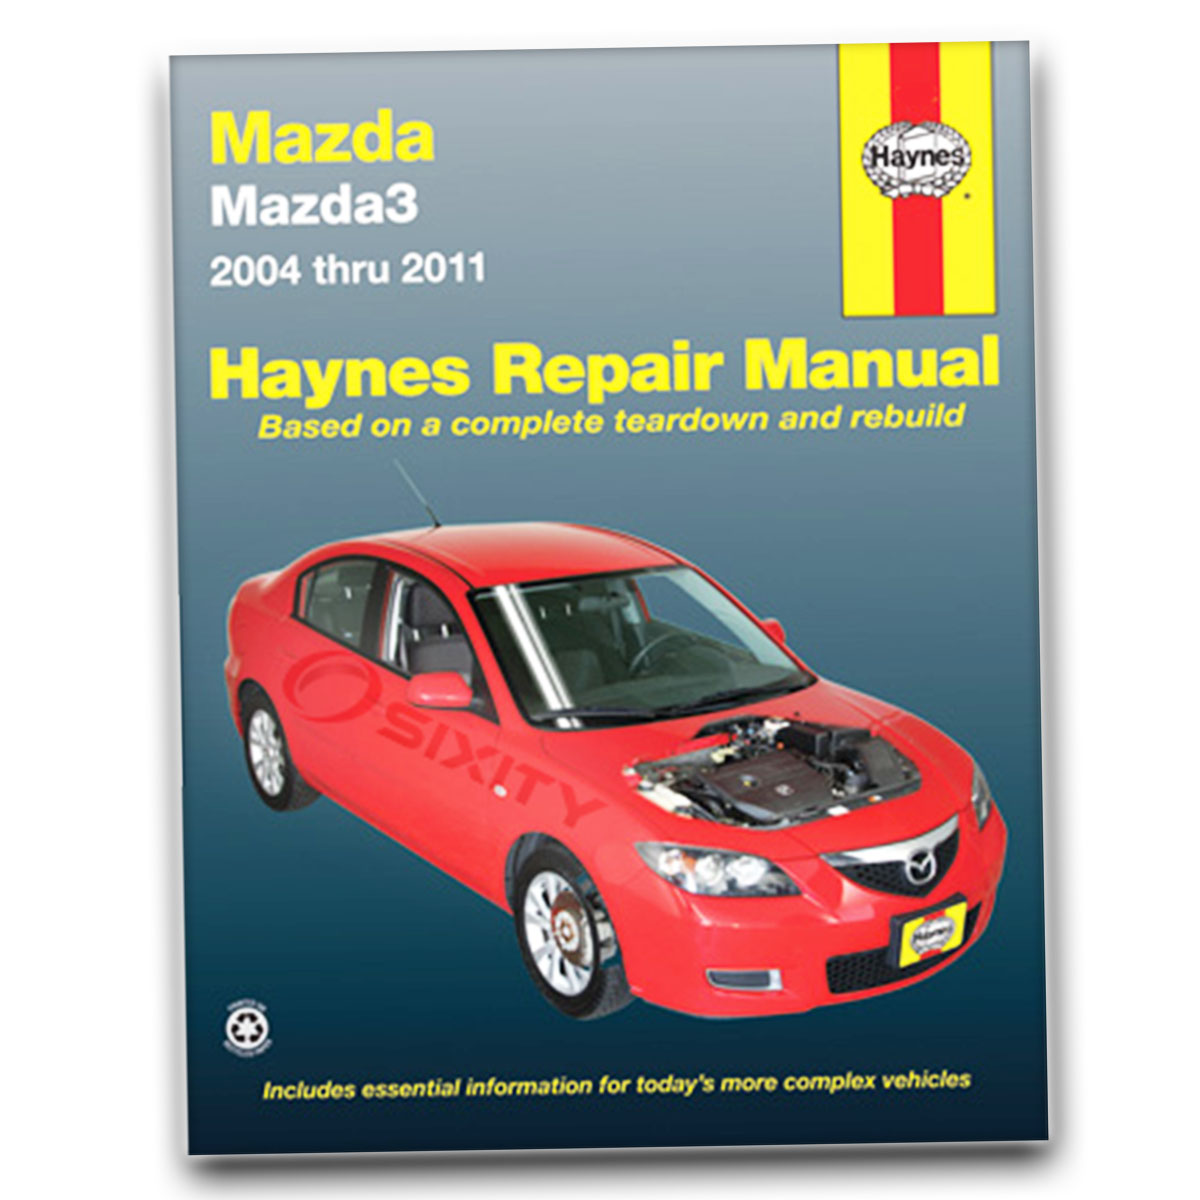 mazda 3 haynes repair manual i mazdaspeed sp23 shop service garage rh ebay com Clymer Manuals Haynes Manuals for 2003 Jeep